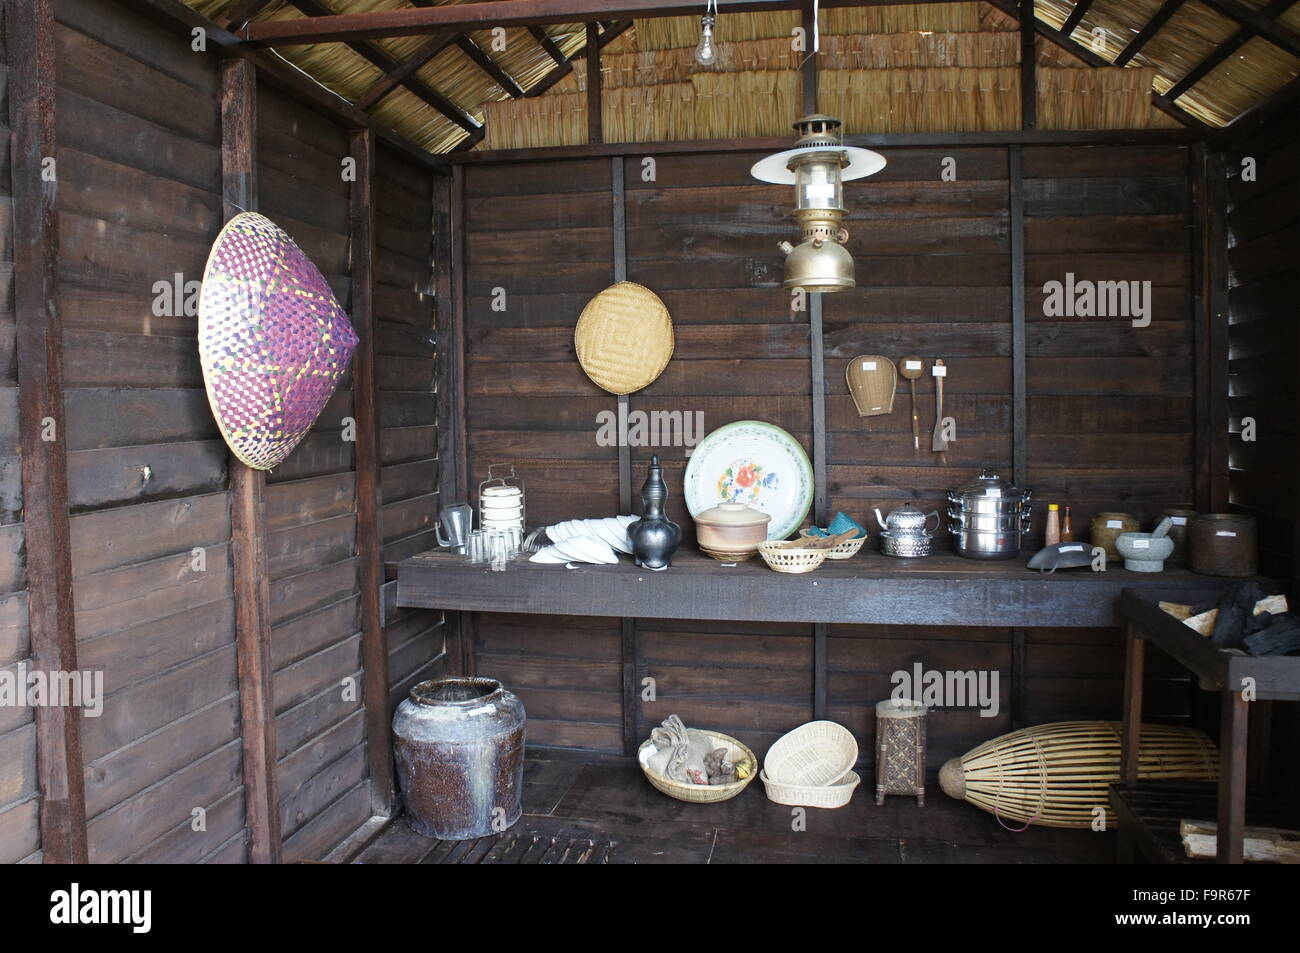 traditional Malay household kitchen utensils - Stock Image